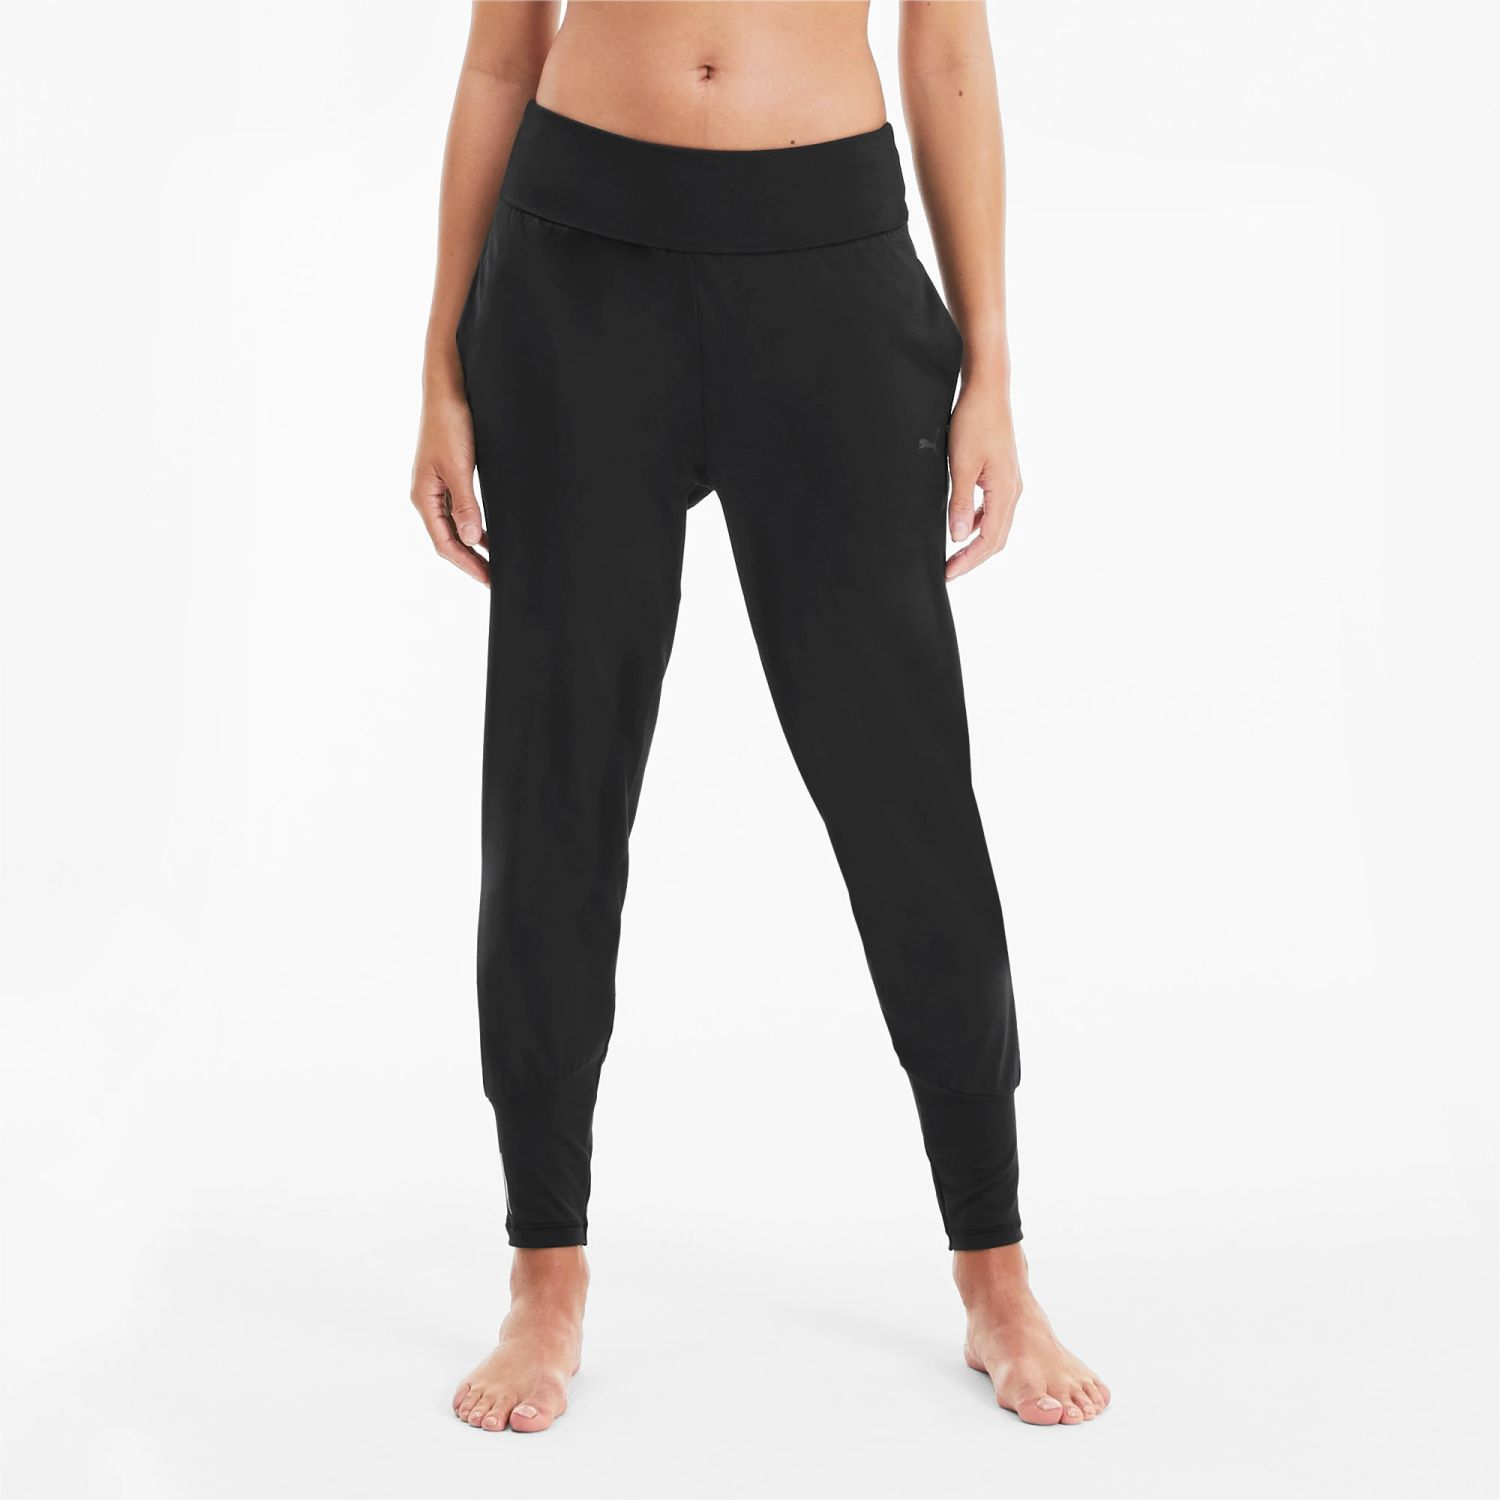 Puma studio tapered pant Negro Leggings Deportivos